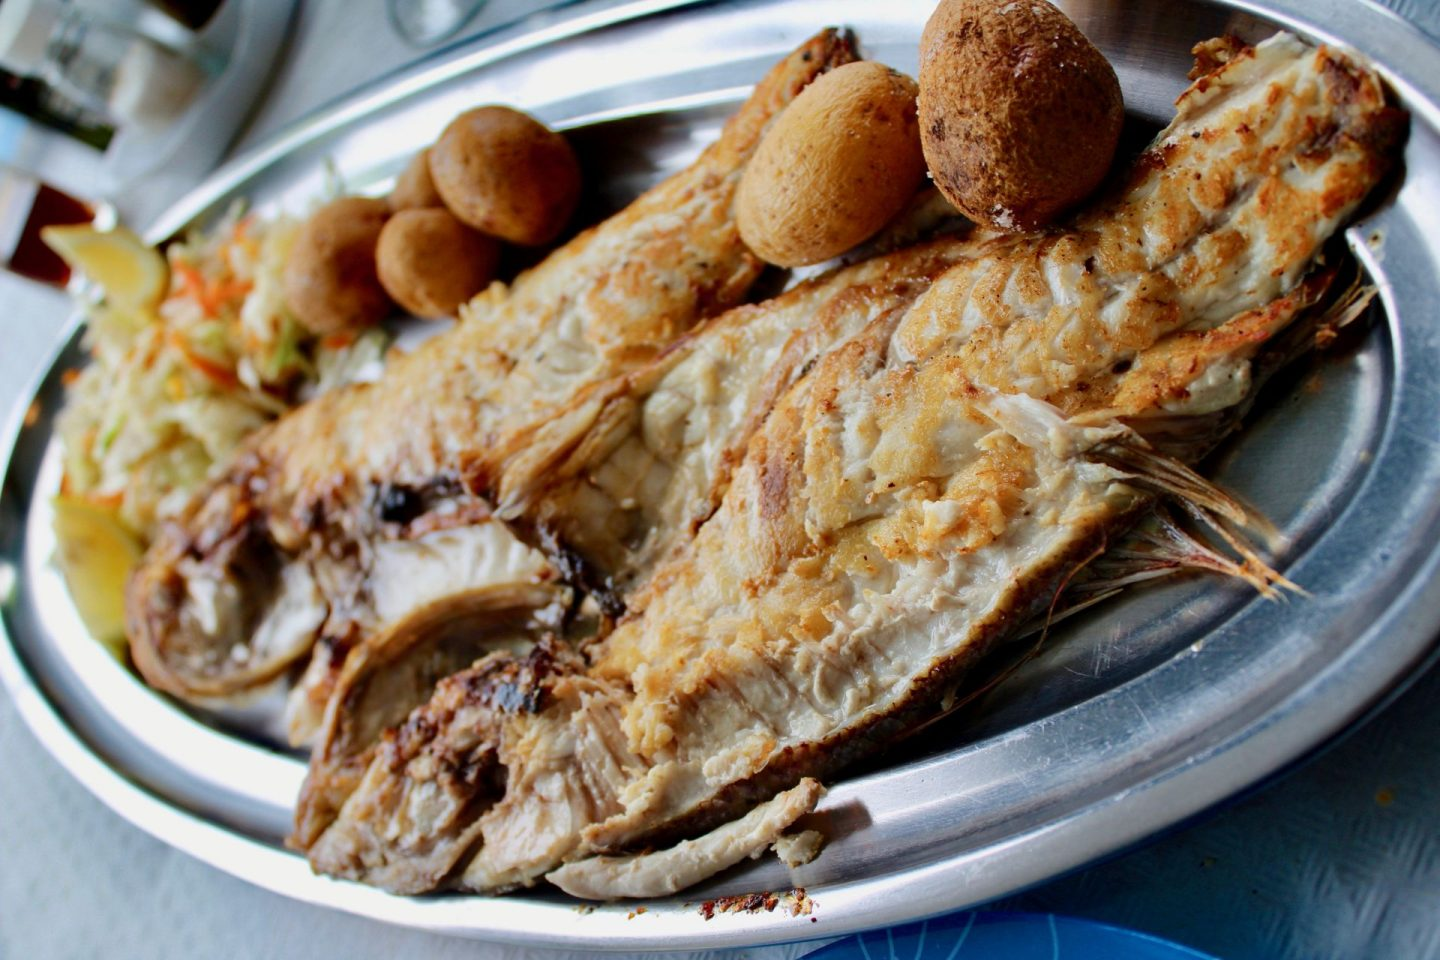 A plate of fish eaten at Los Gallegos in Orzola, Lanzarote. It's a long metal plate, with the front in focus and the back fading out of focus.